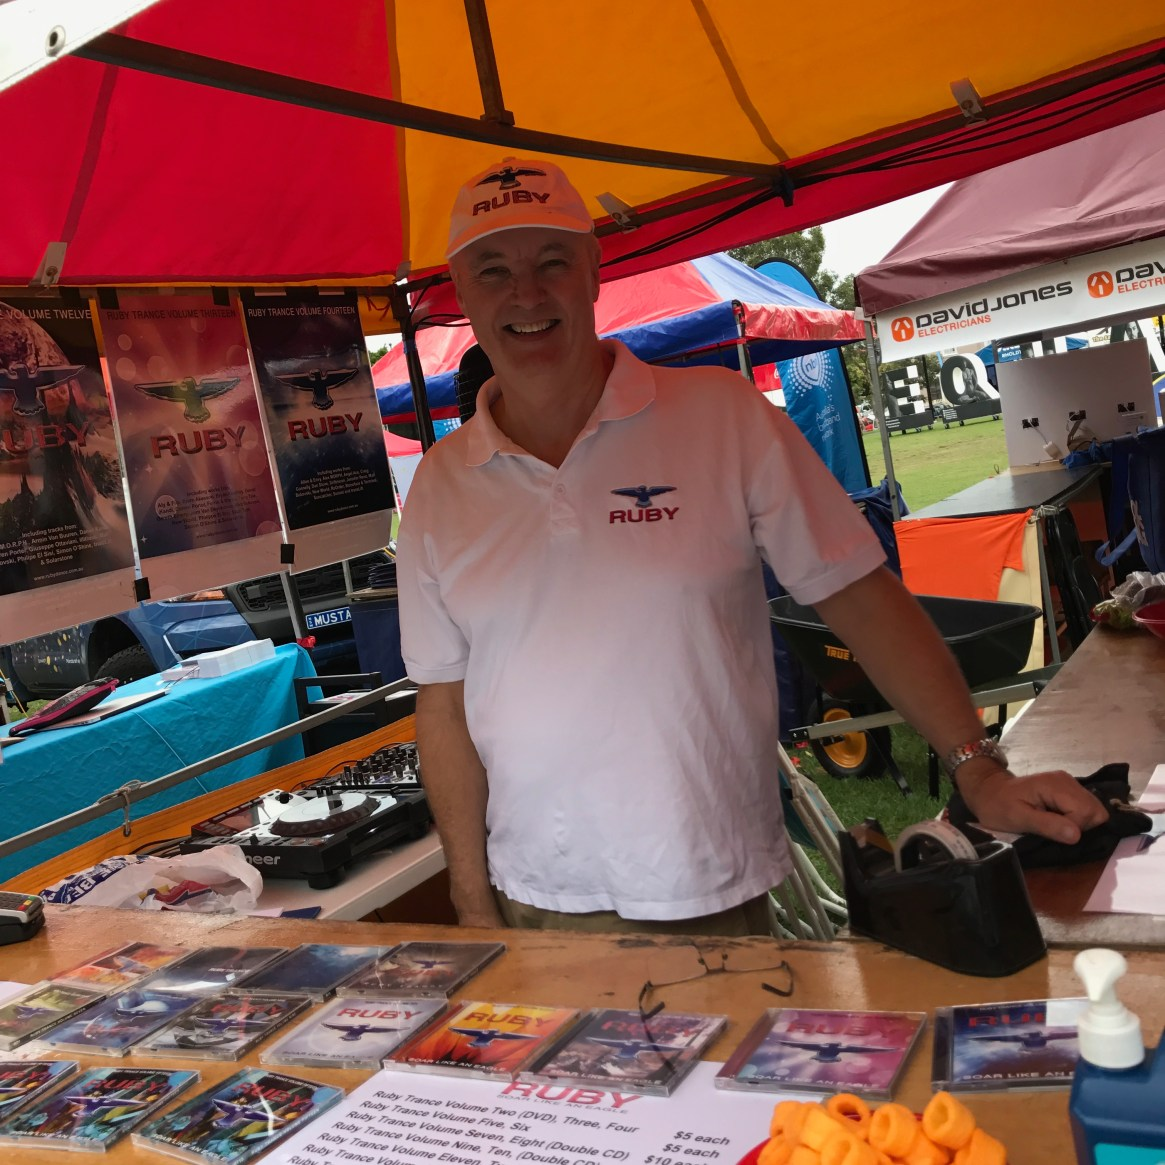 DJ Ruby was an extremely popular stall at today's Fair Day. We look forward to them joining us in Business Avenue every year. DJ Ruby is a Networker Member.